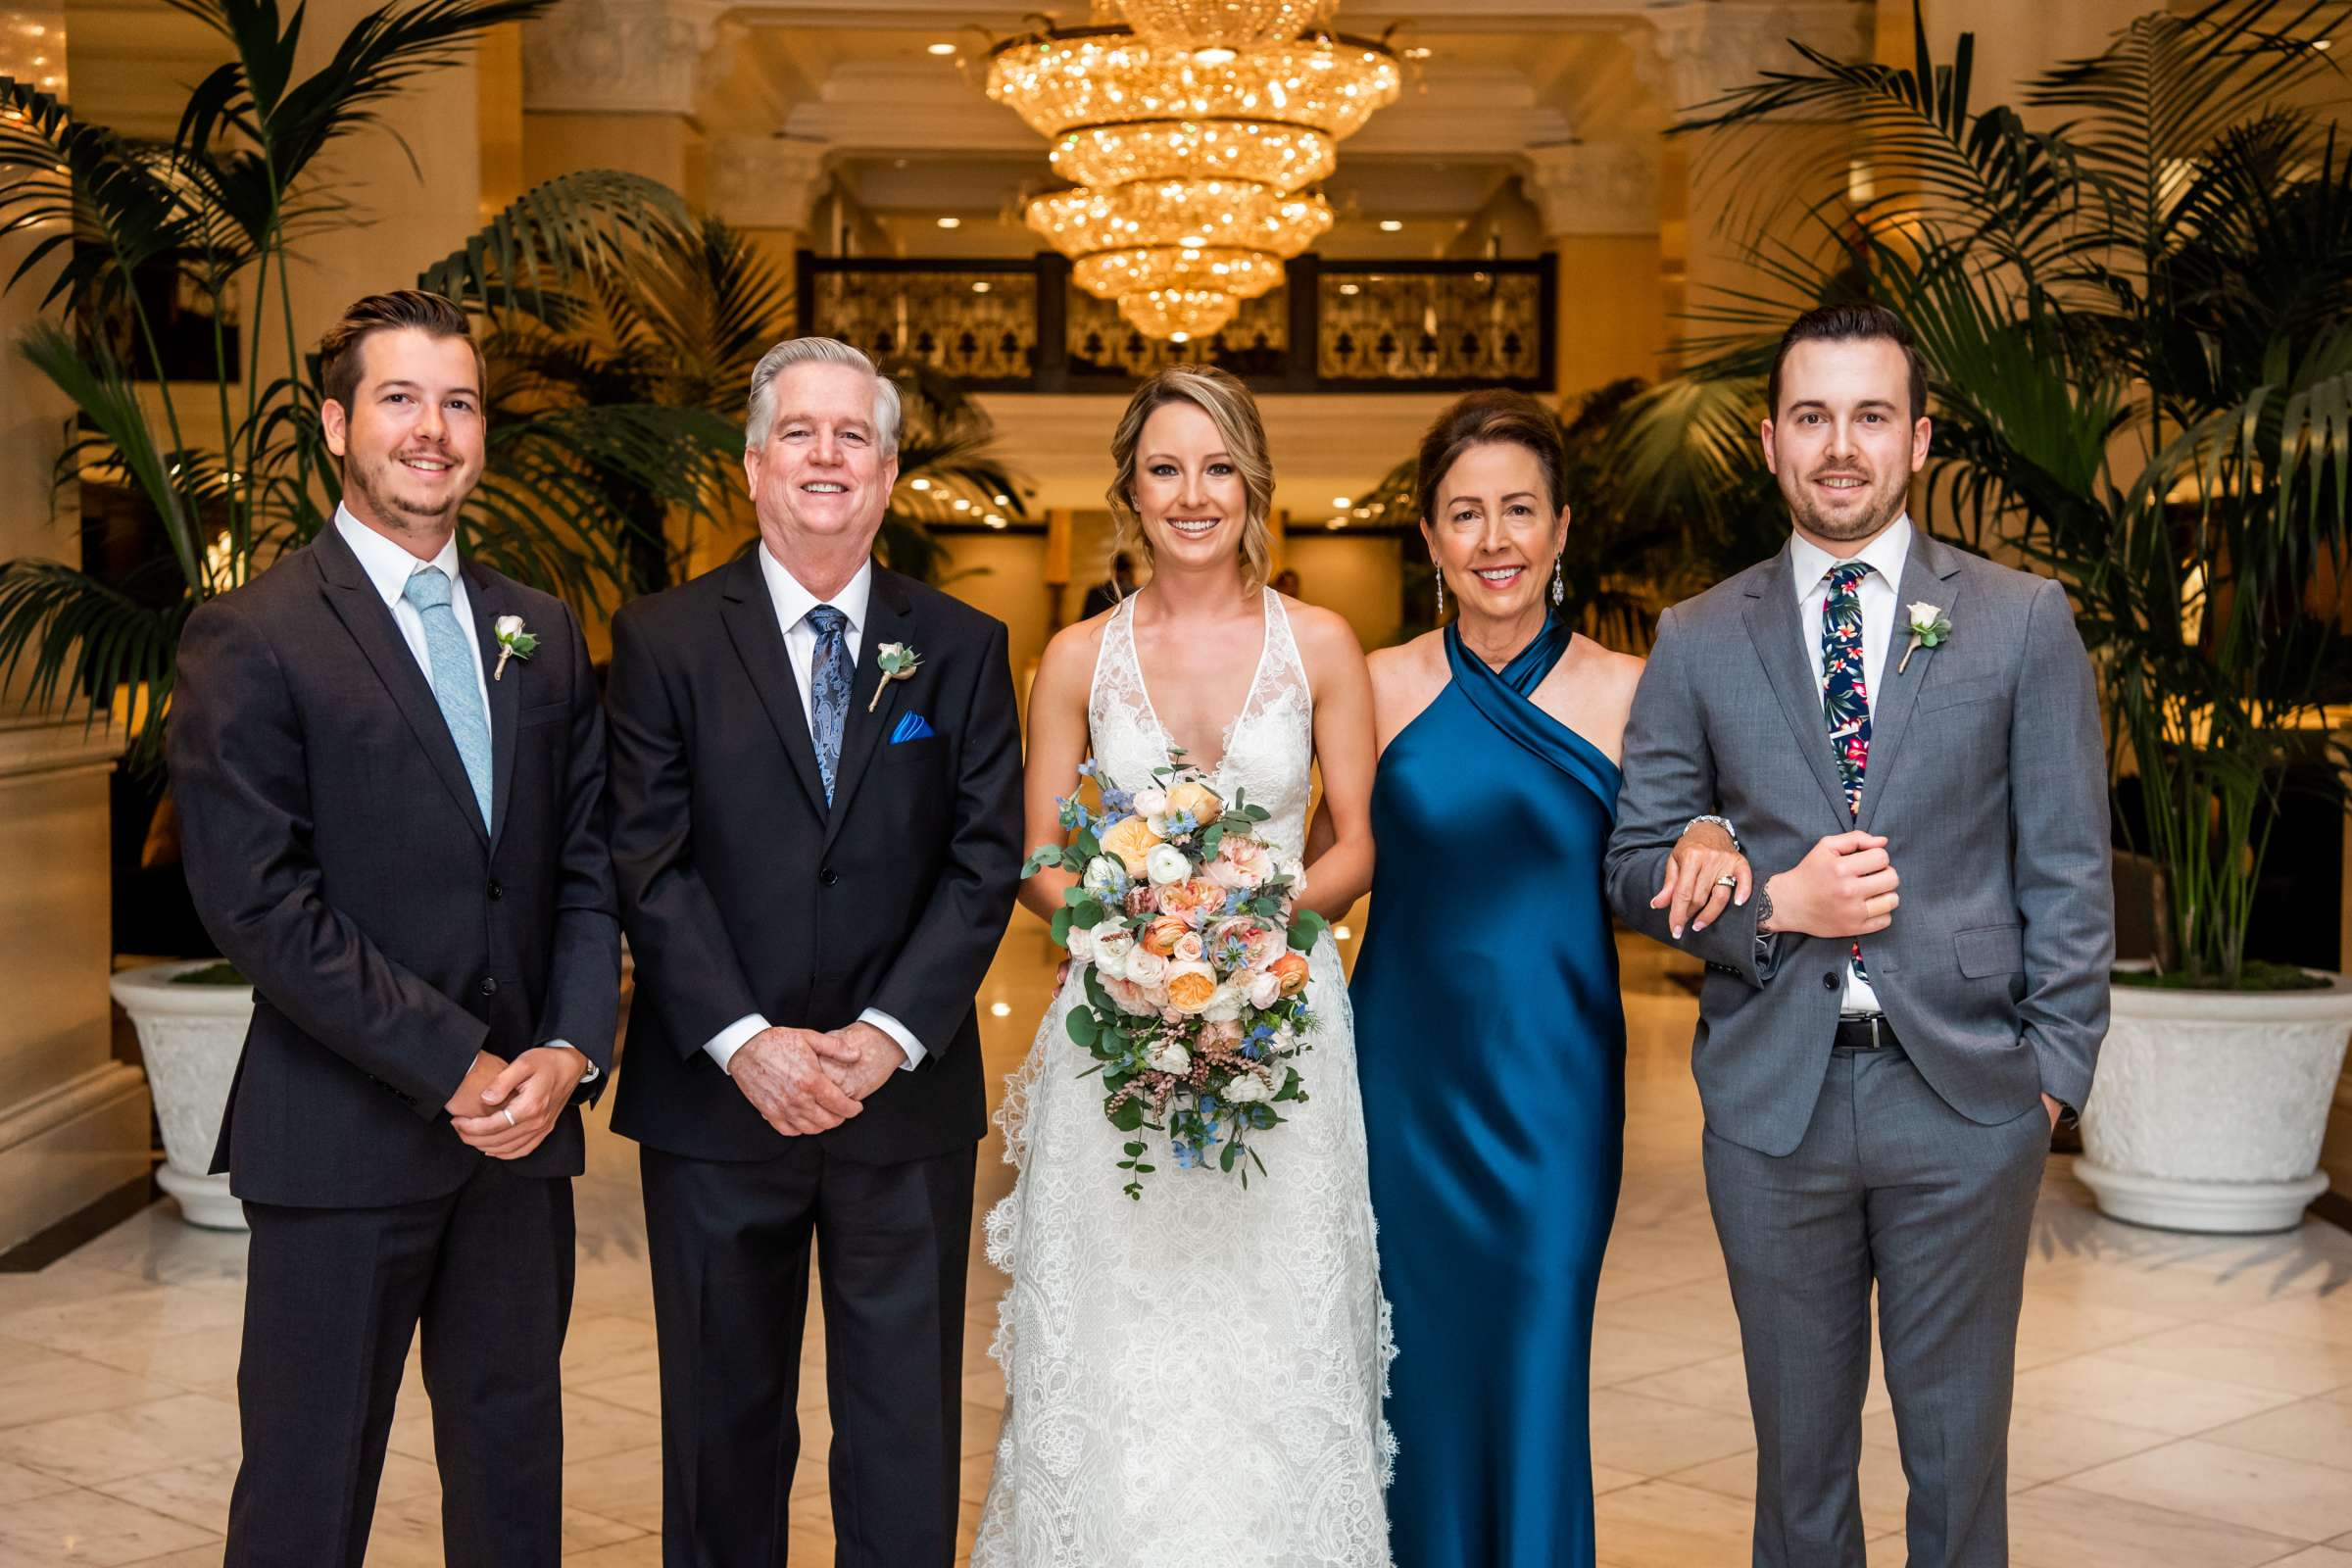 The Prado Wedding coordinated by Bliss Events, Sara and Marvin Wedding Photo #559526 by True Photography